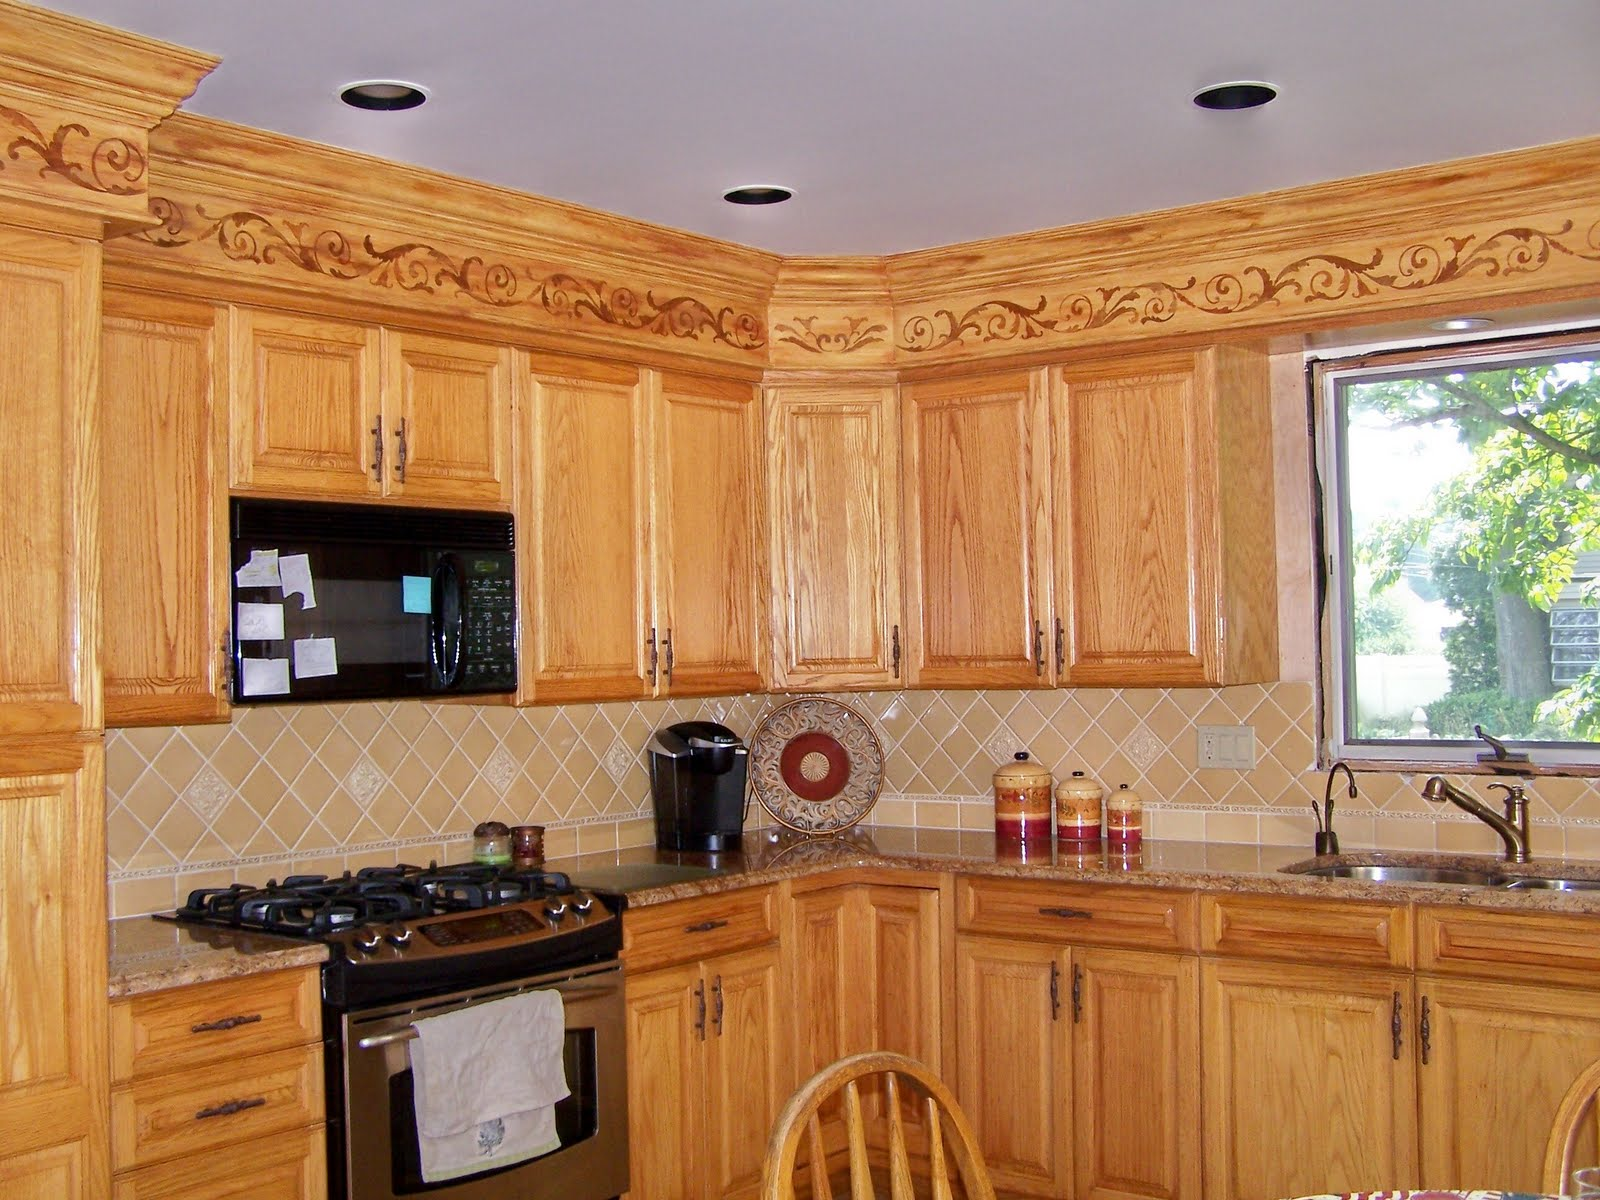 Kitchen Cabinet Makeover From Drab To Fab The Colorful Beethe Colorful Bee